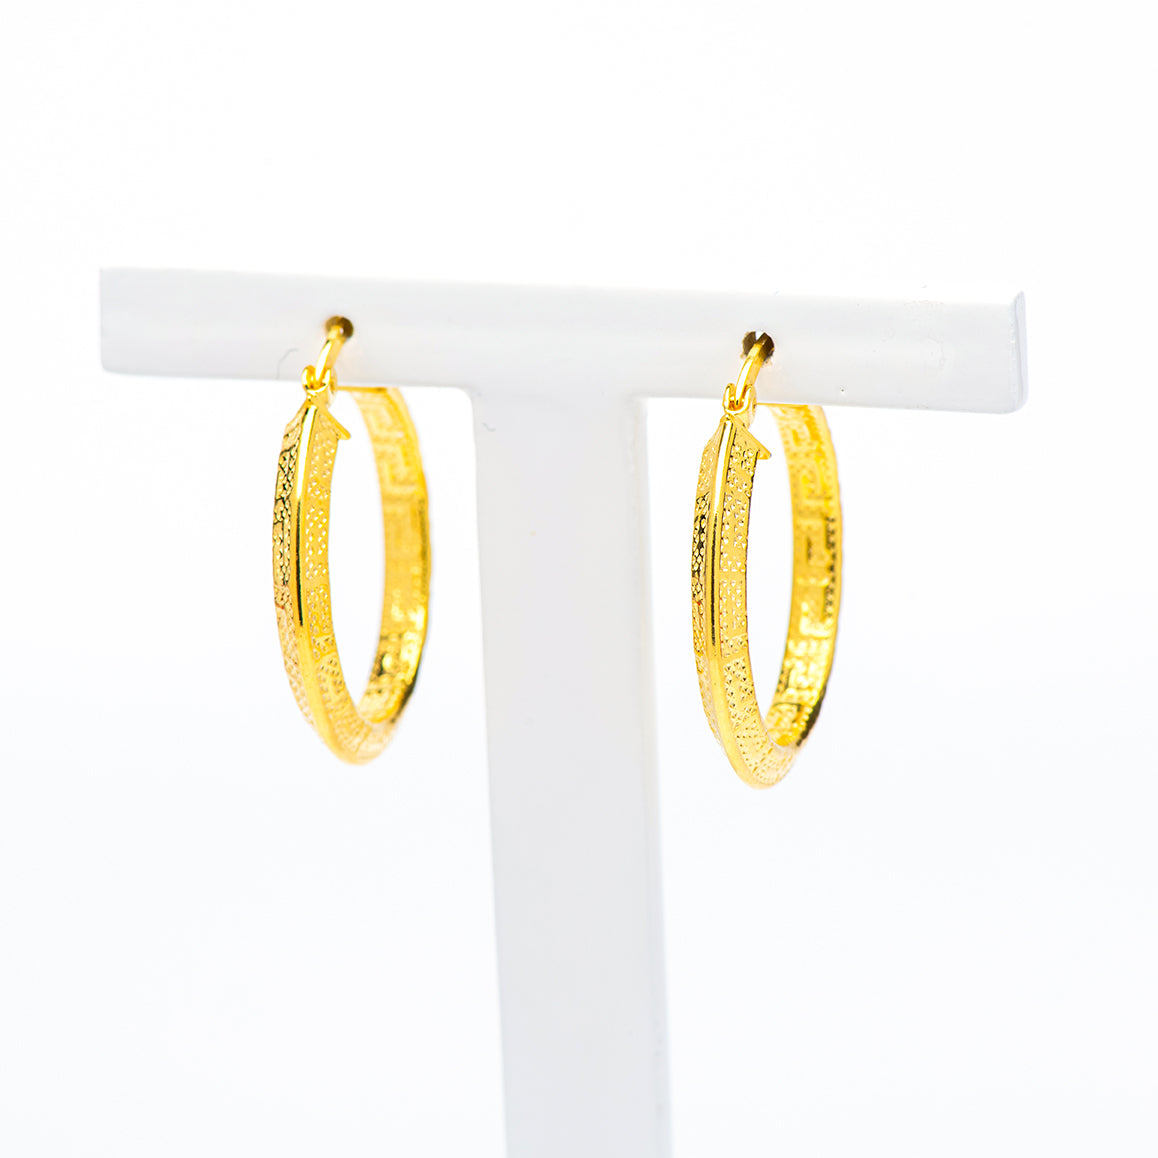 TALI -sterling silver hoops gold Tone